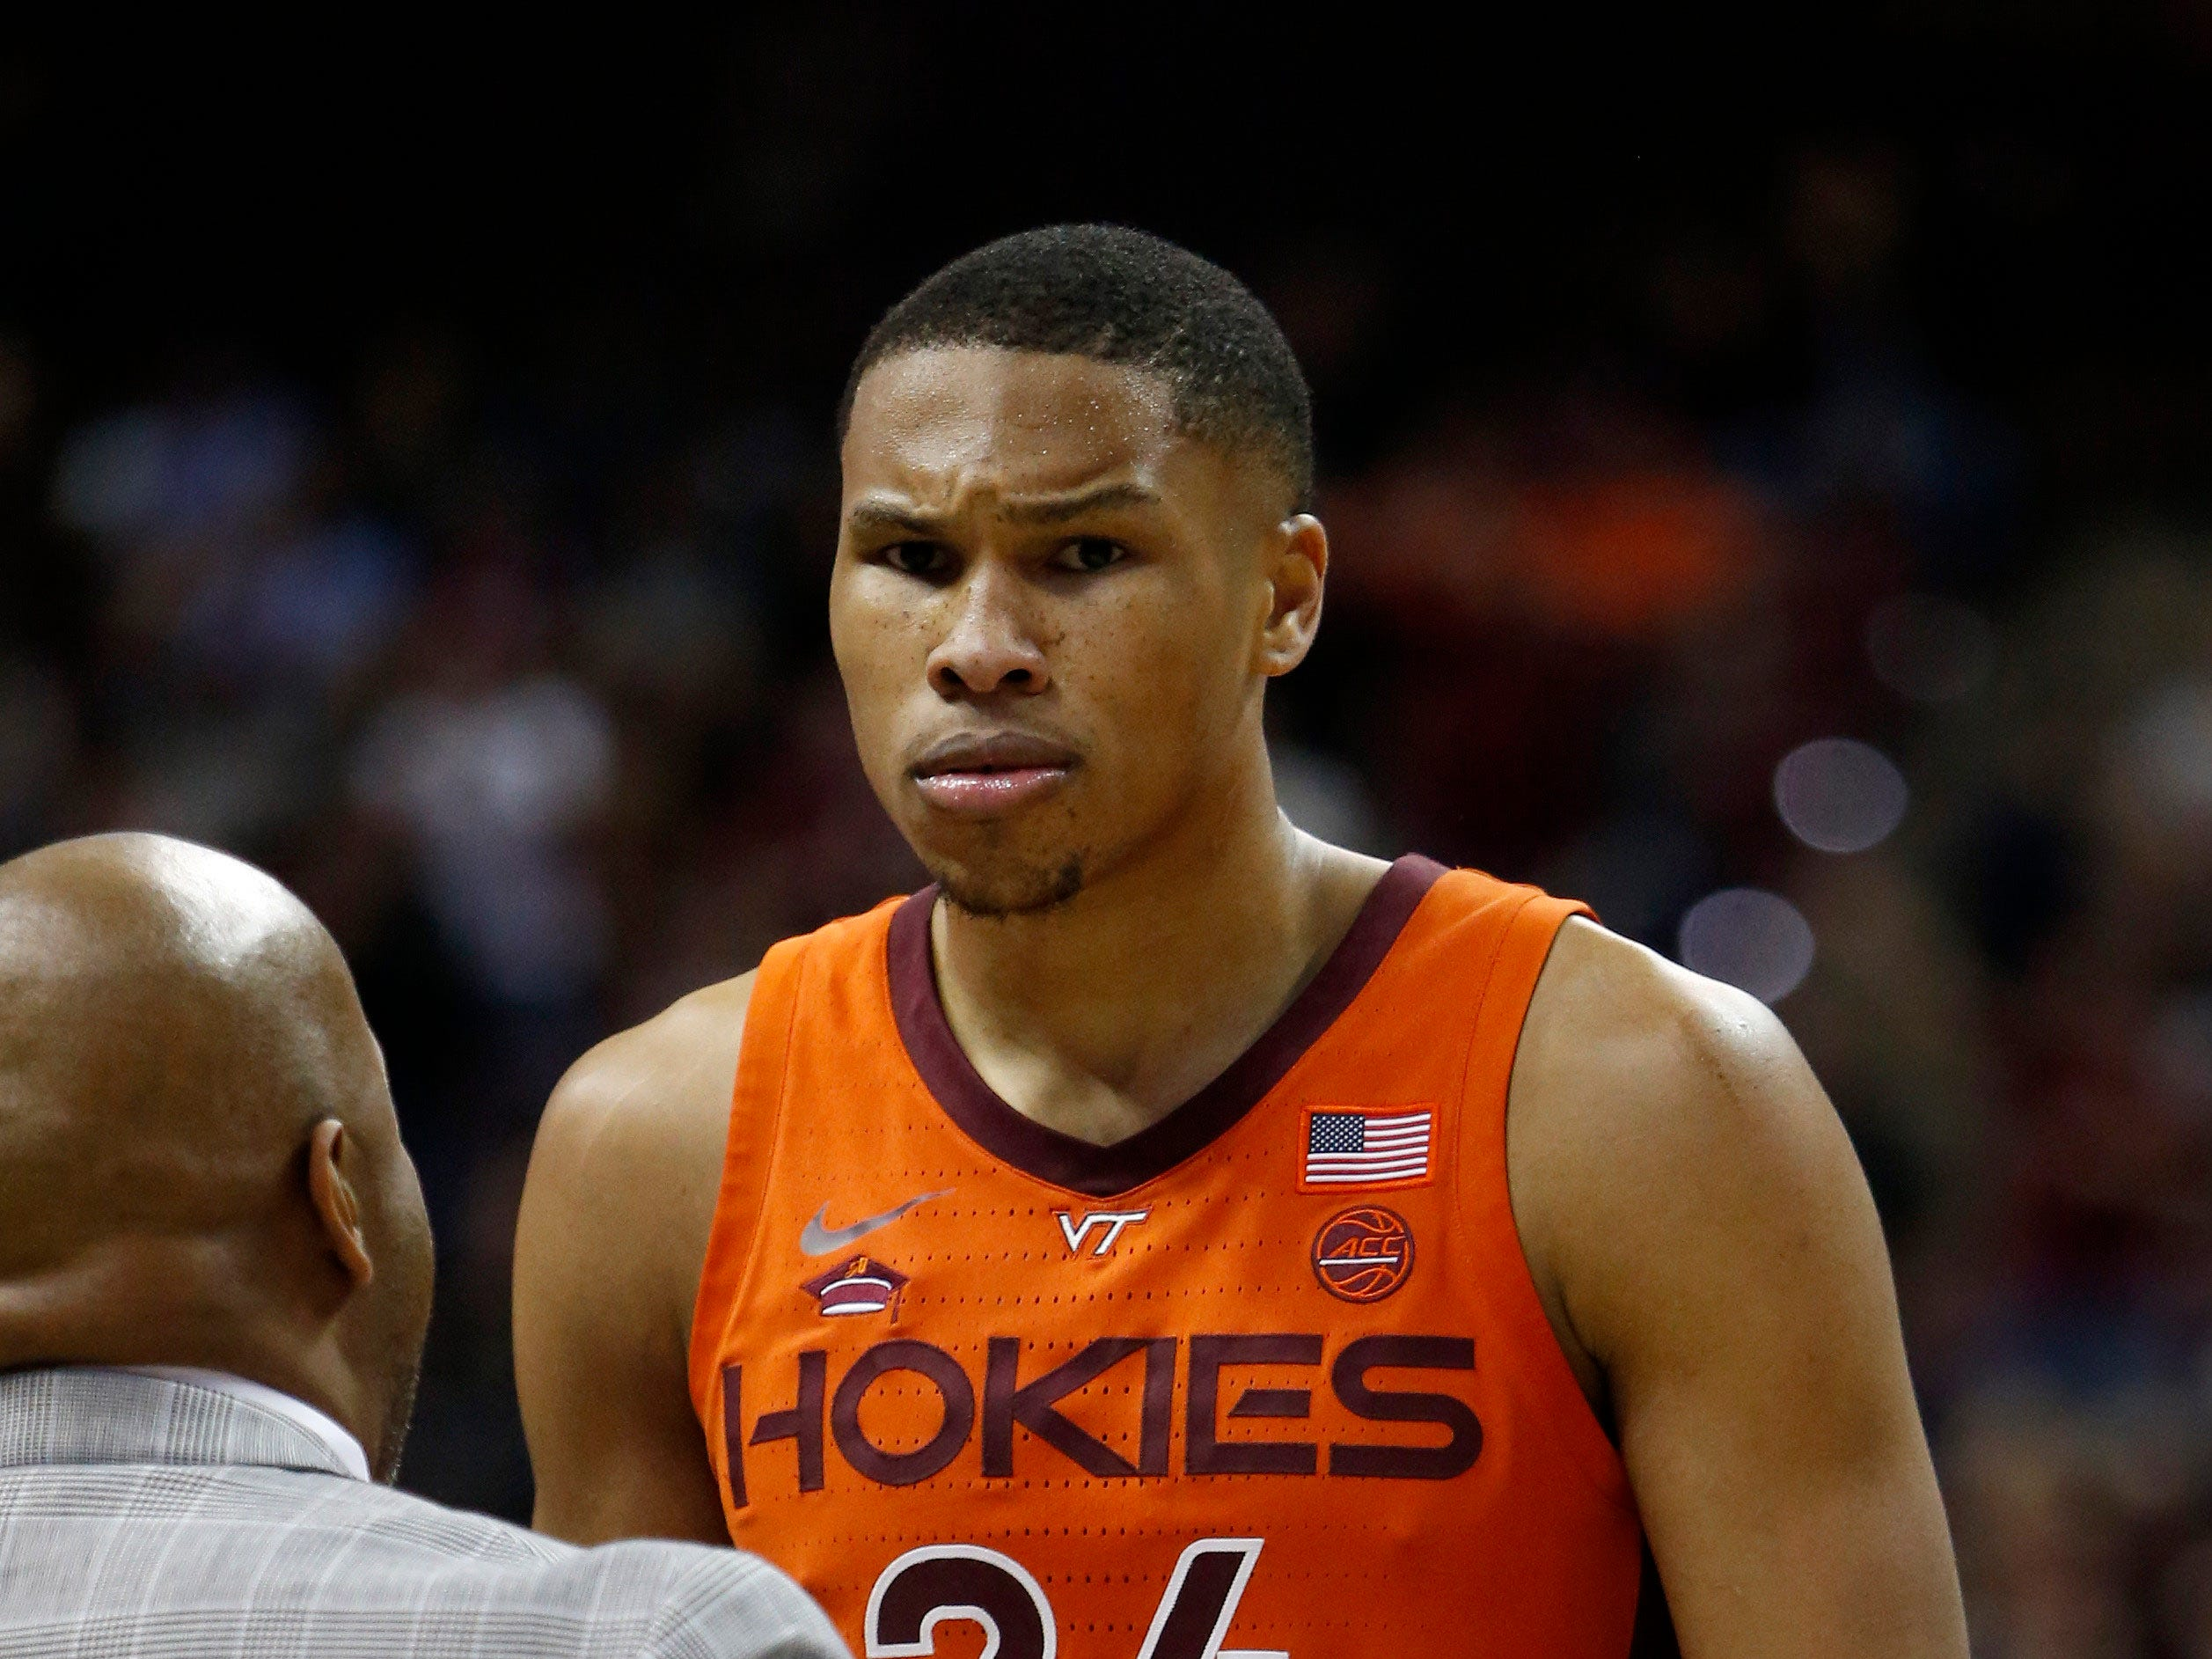 Mar 5, 2019; Tallahassee, FL, USA; Virginia Tech Hokies forward Kerry Blackshear Jr. (24) reacts after fouling out against the Florida State Seminoles during the second half at Donald L. Tucker Center. Mandatory Credit: Glenn Beil-USA TODAY Sports